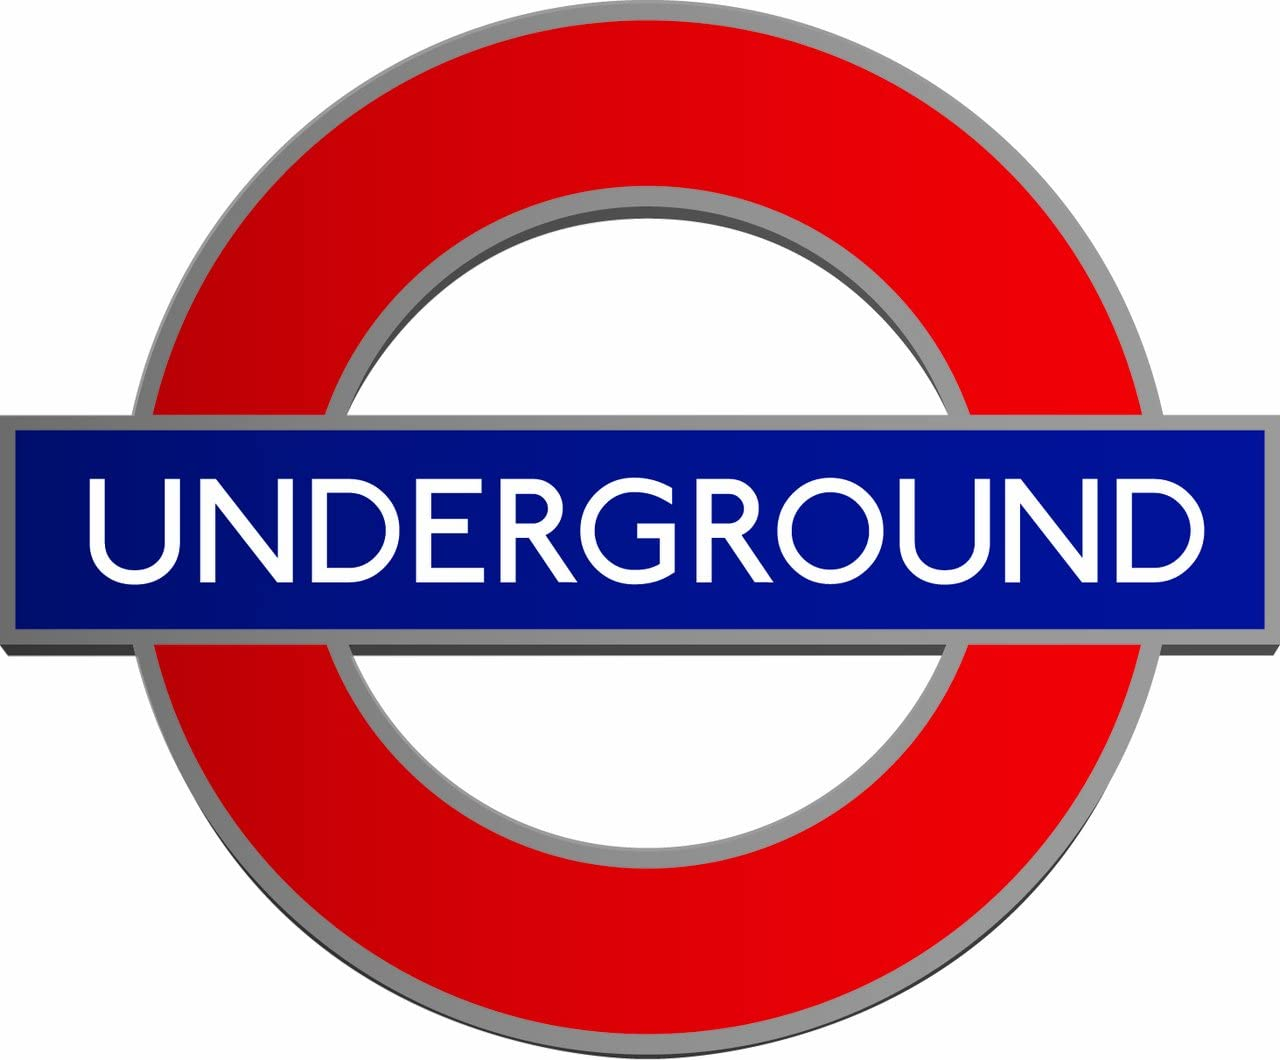 Image result for london underground sign""